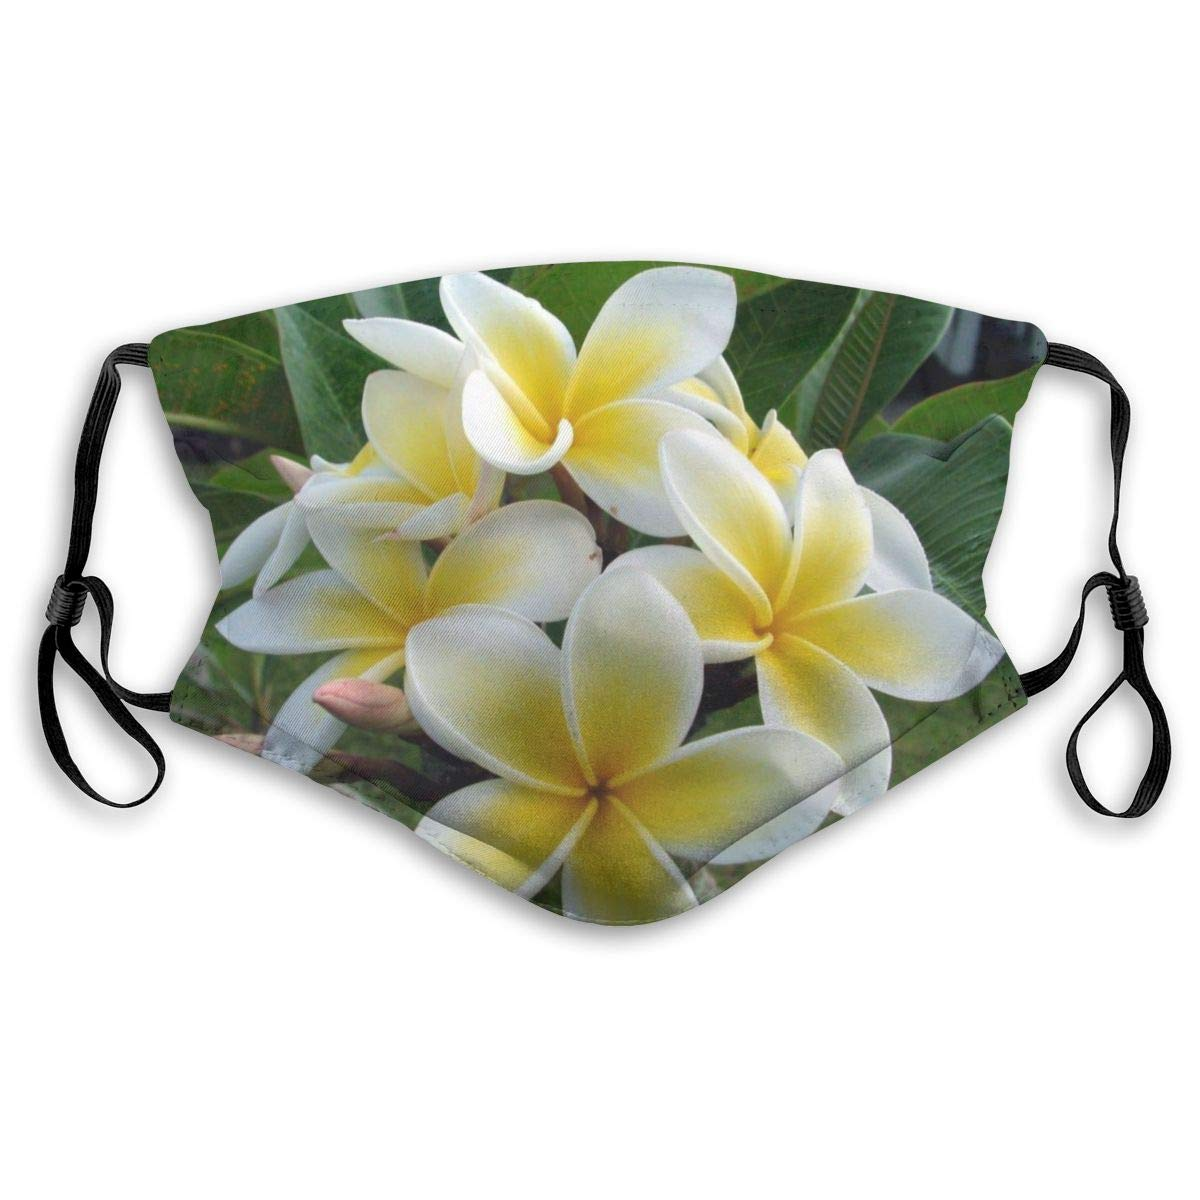 Hawaiian Flower Plumeria Washable Reusable Mask, Anti Dust Half Face Mouth Mask For Kids Teens Men Women With Adjustable Ear